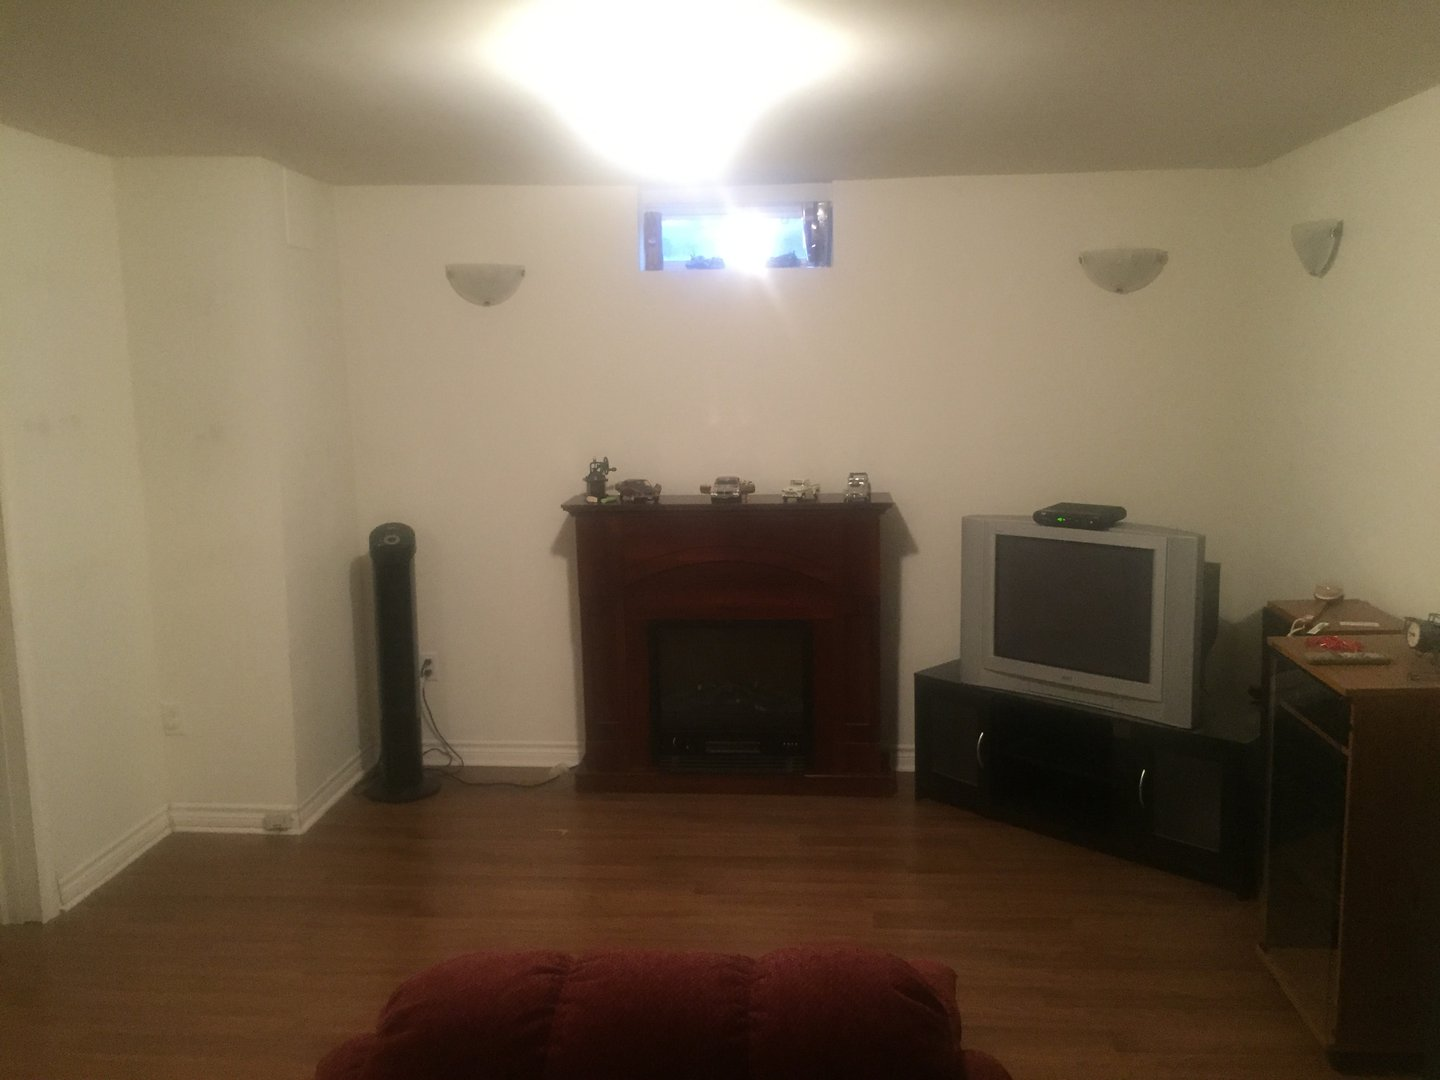 Apartment for rent at 57 Keats Terrace, Brampton, ON. This is the misc room with fireplace and hardwood floor.